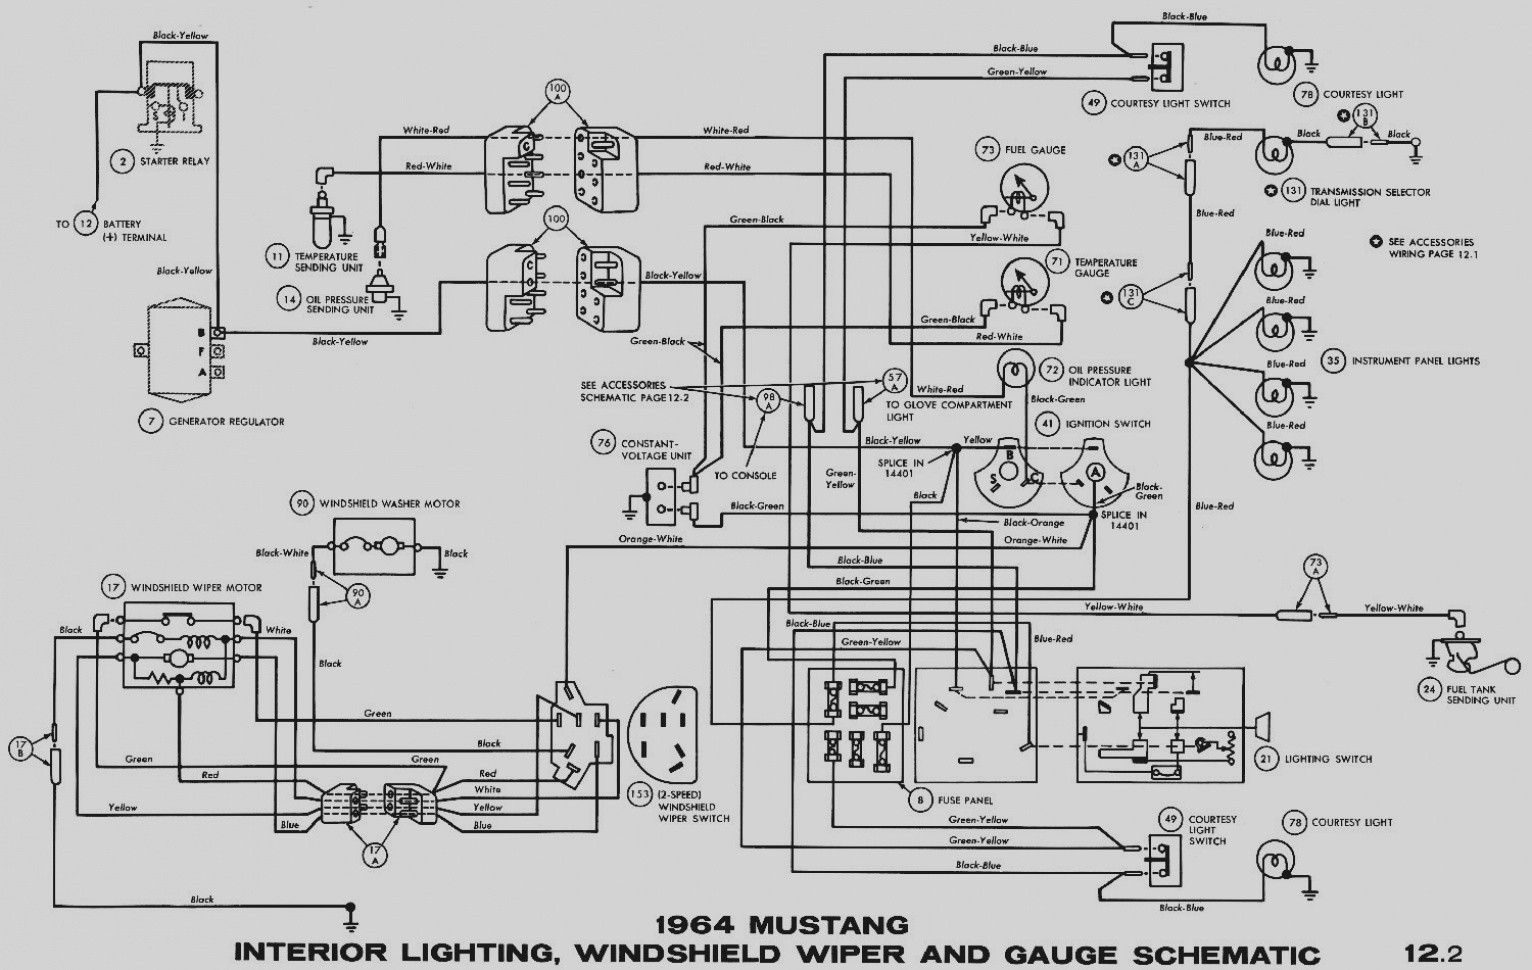 wiring diagram besides 1970 chevy c10 ignition switch wiring diagram rh sellfie co 1970 chevy nova wiring diagram 1970 chevy alternator wiring diagram